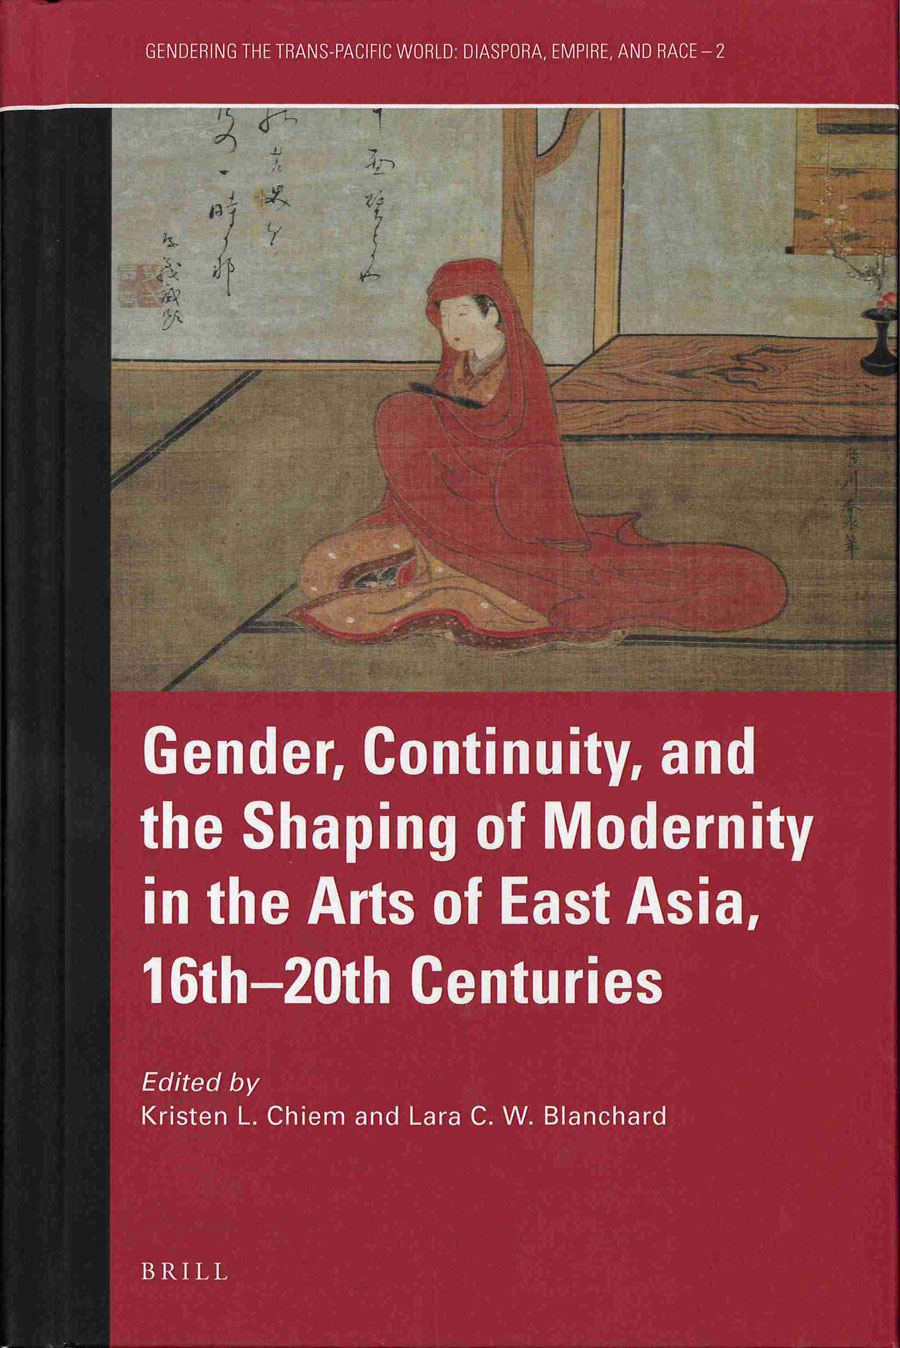 Gender, Continuity, and the Shaping of Moderity in the Arts of East Asia, 16th-20th centuries